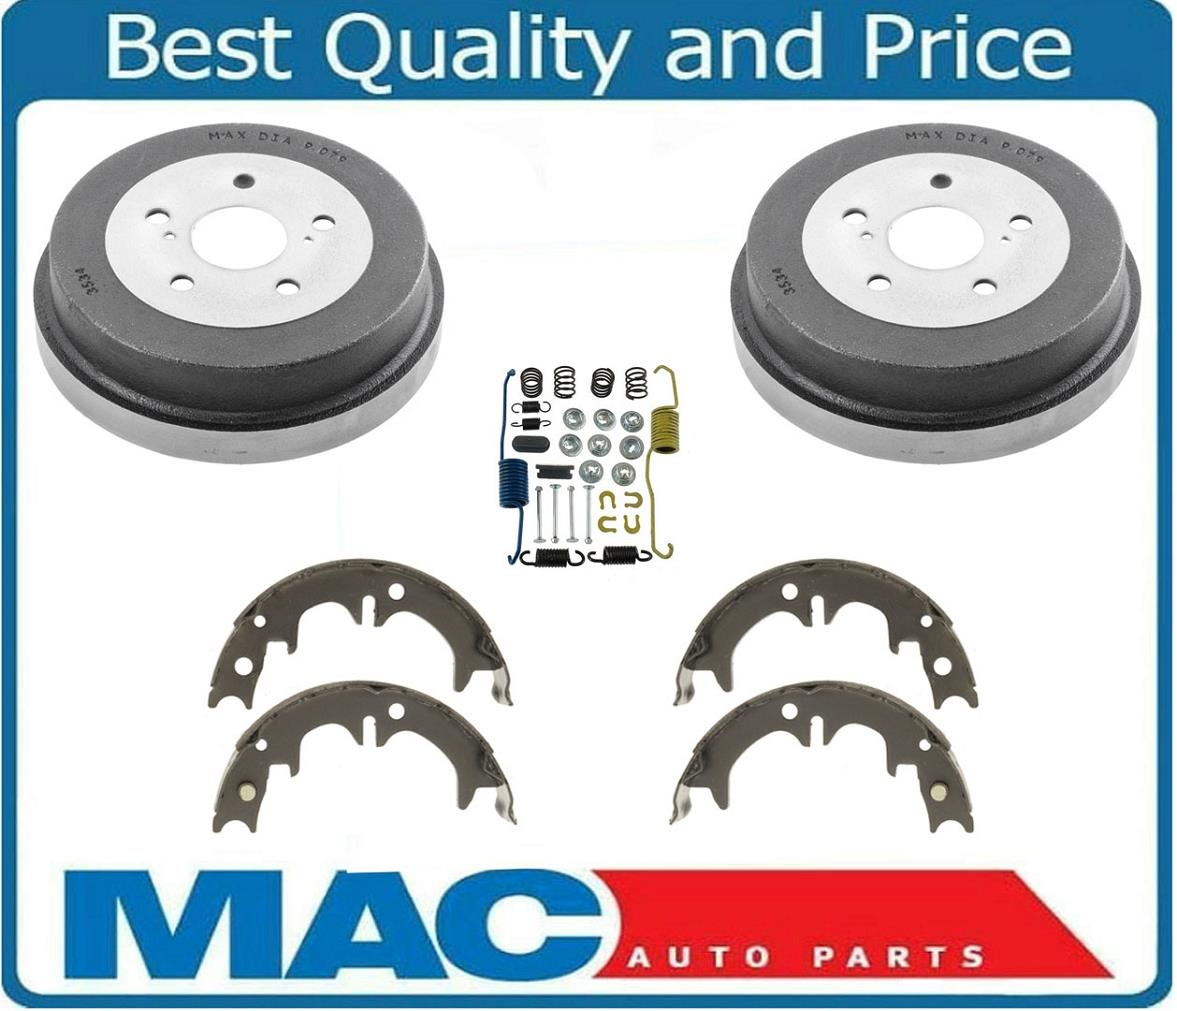 1999 Toyota Camry Brake Pads: 92-00 Toyota Camry All 01 To 05 USA Built 2 Rear Drums